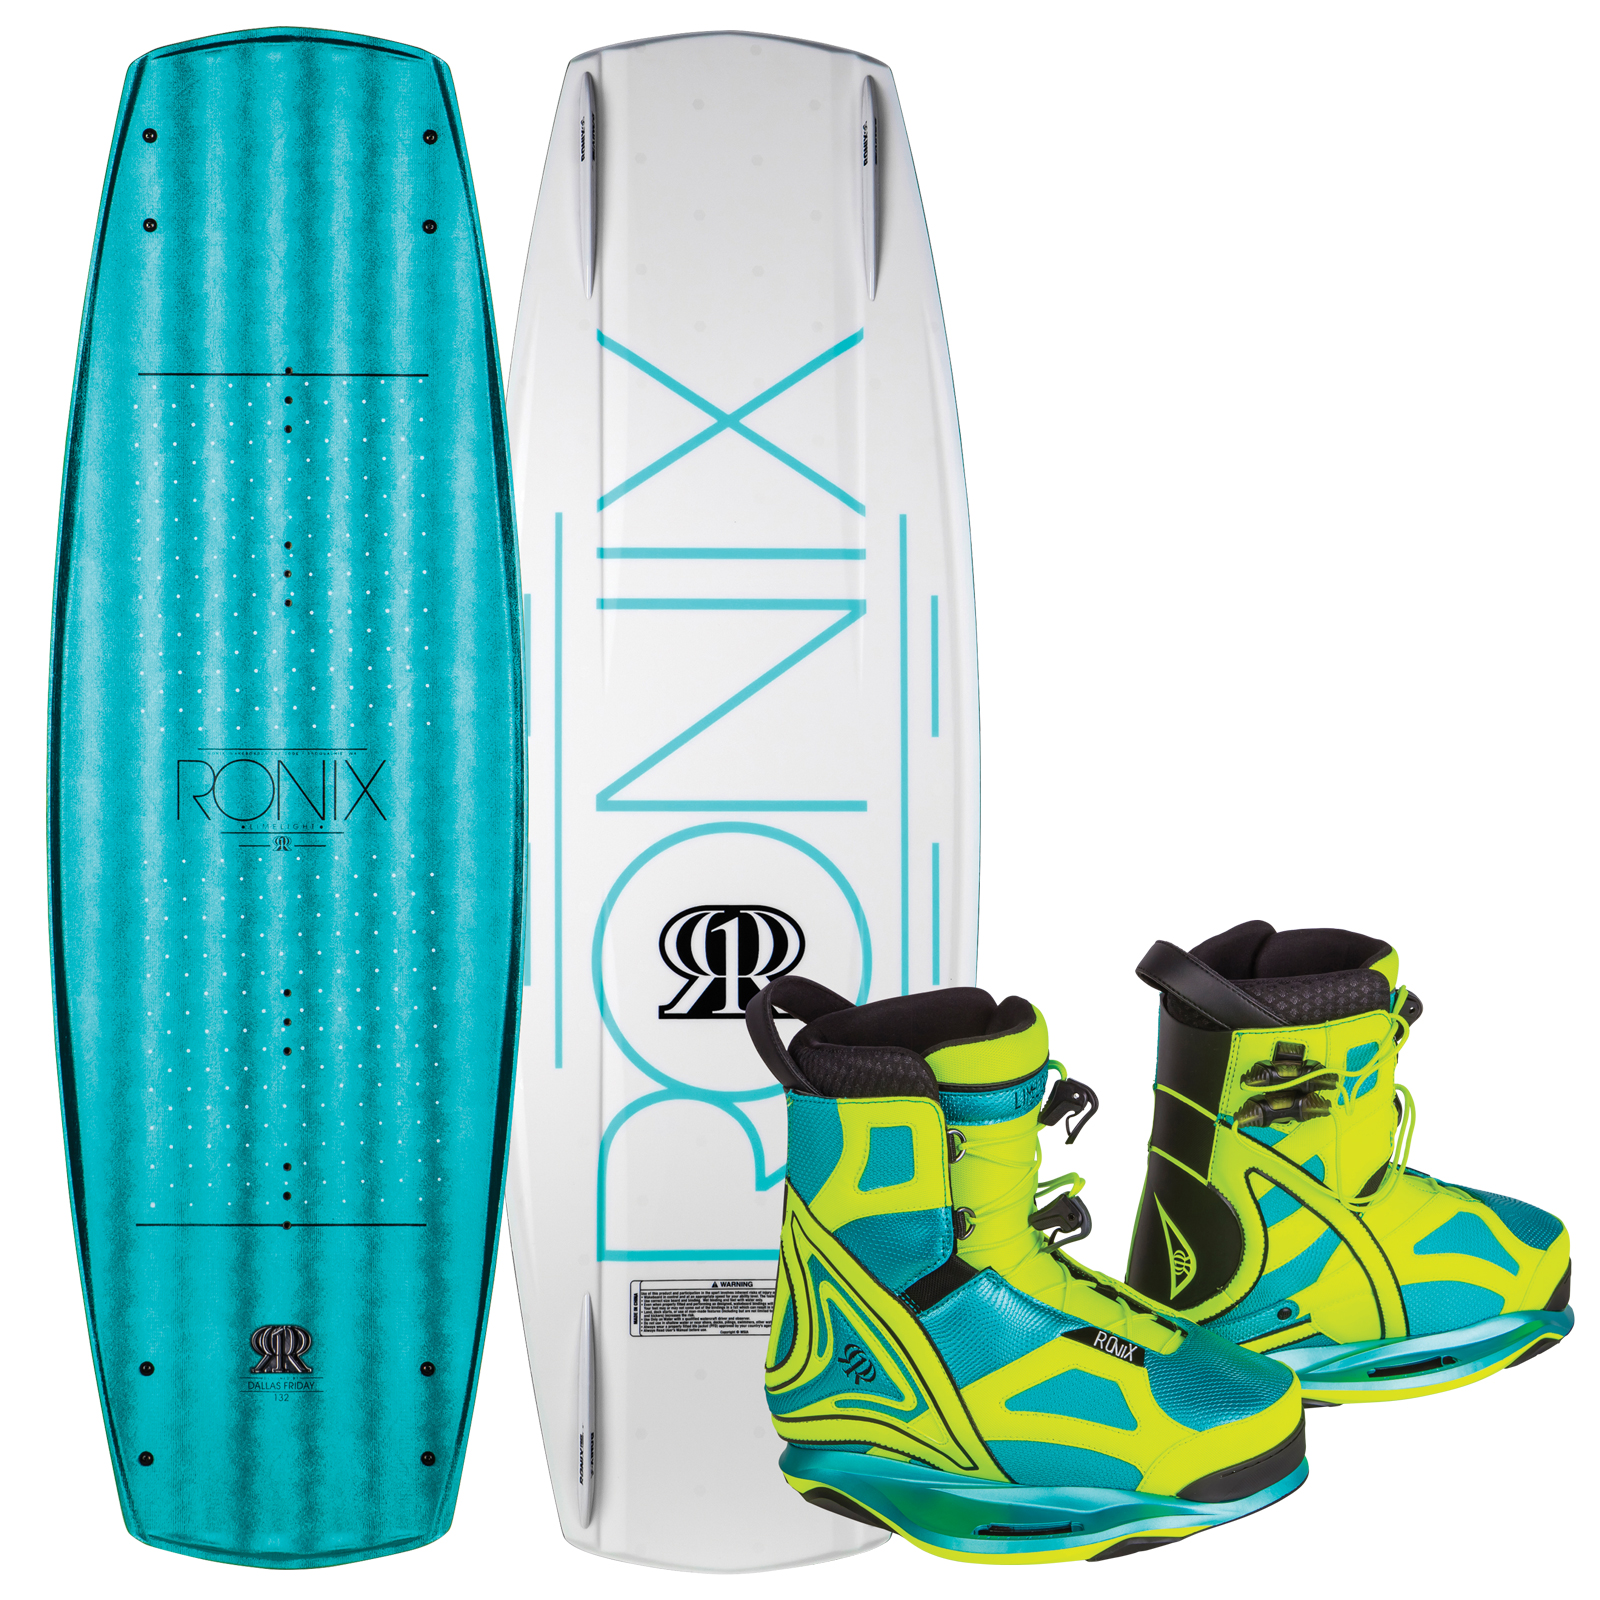 LIMELIGHT 132 W/ LIMELIGHT PACKAGE RONIX 2017